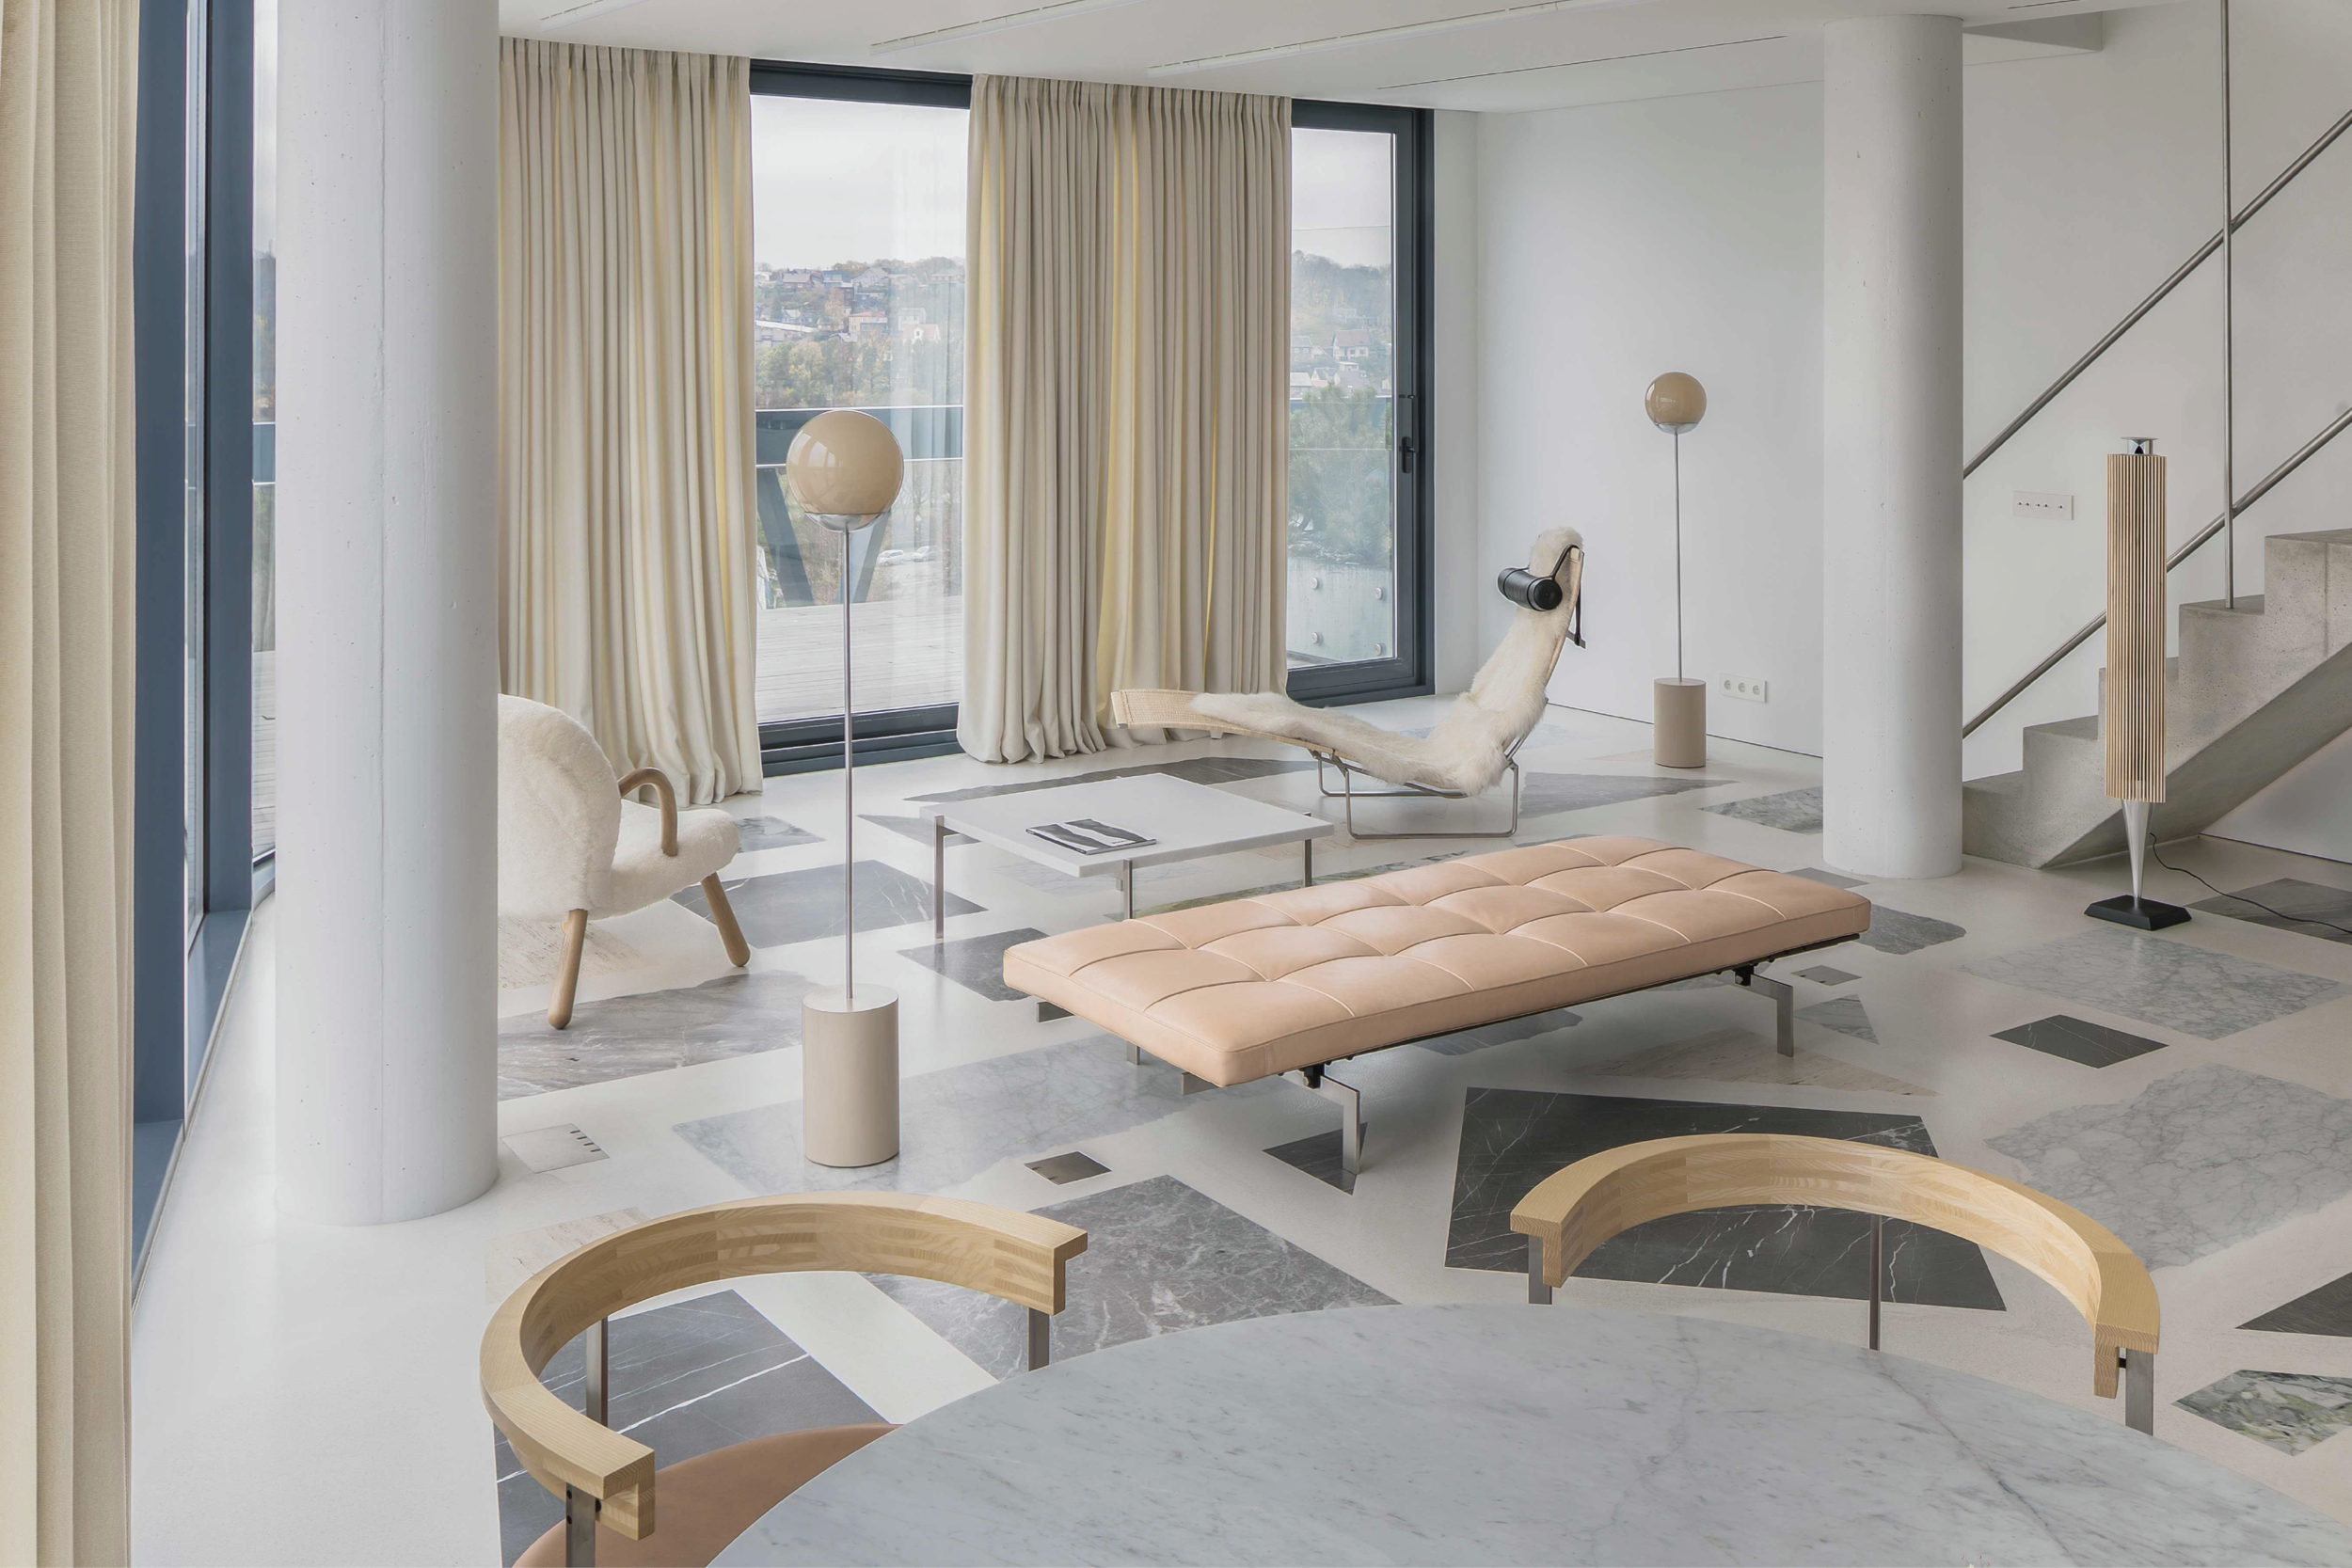 Atelier D Architecture Hervé Vincent design discoveries: week of june 10, 2019 huskdesignblog